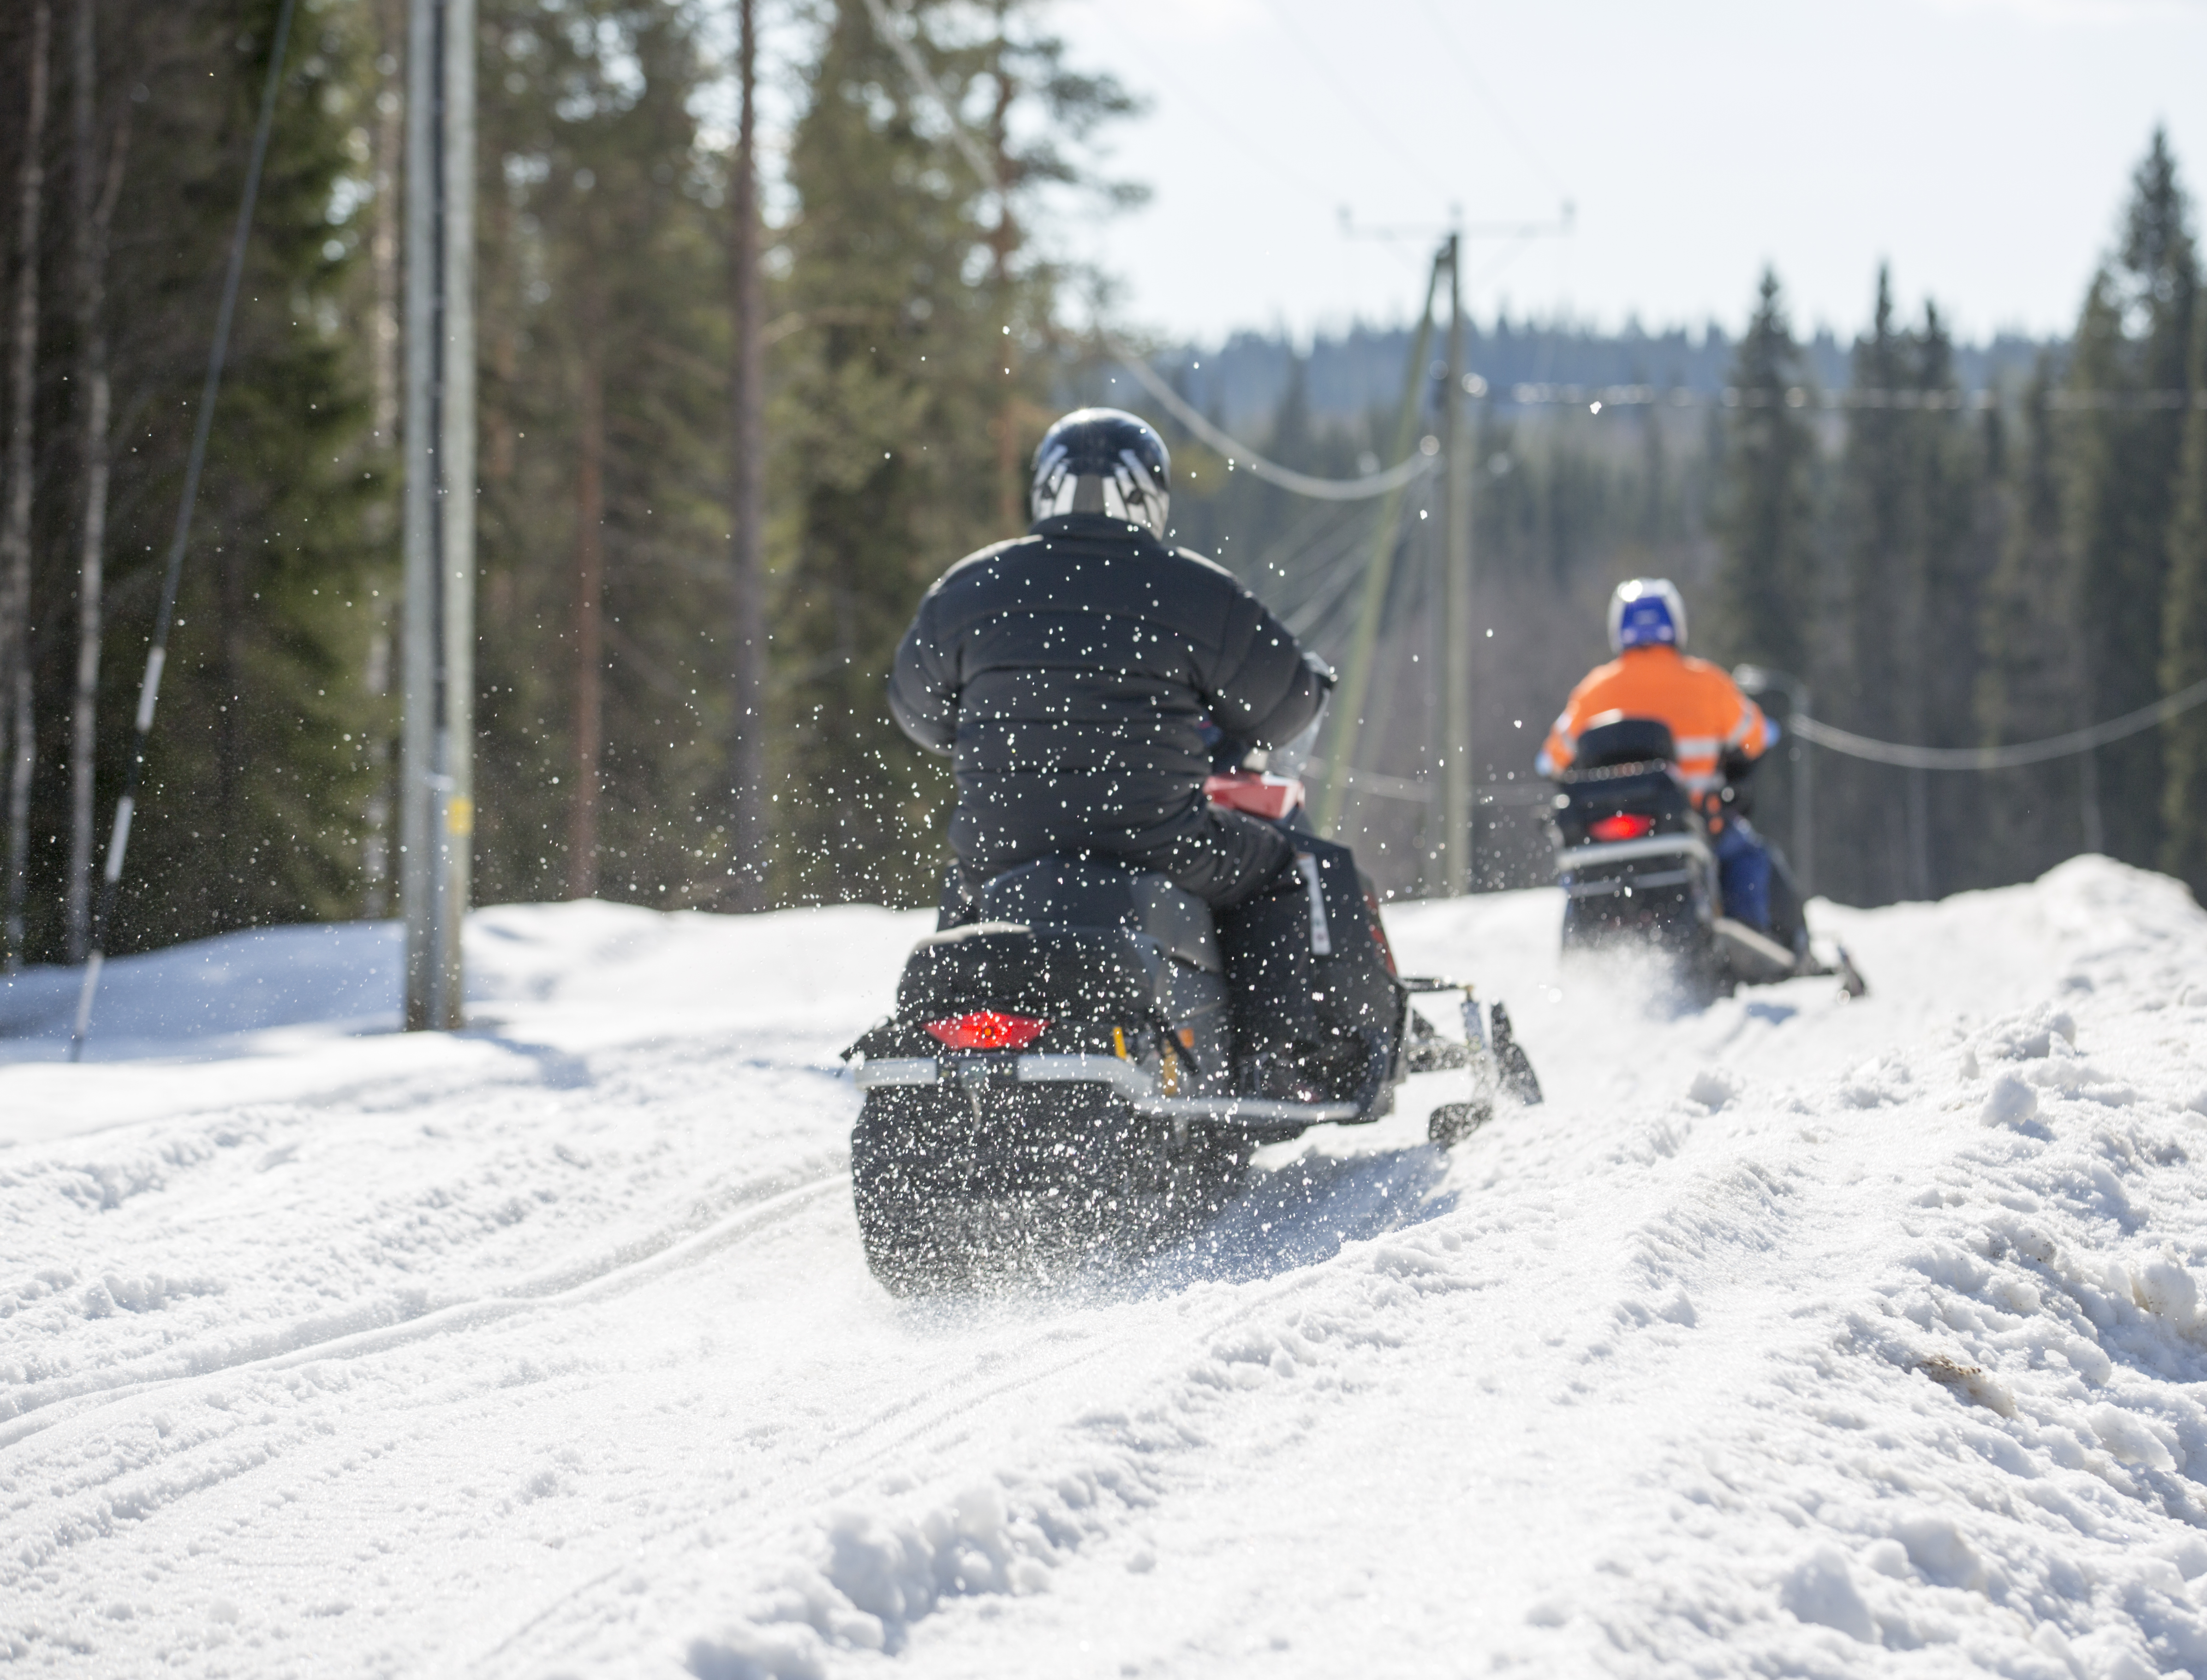 Two people riding snowmobiles in the mountains